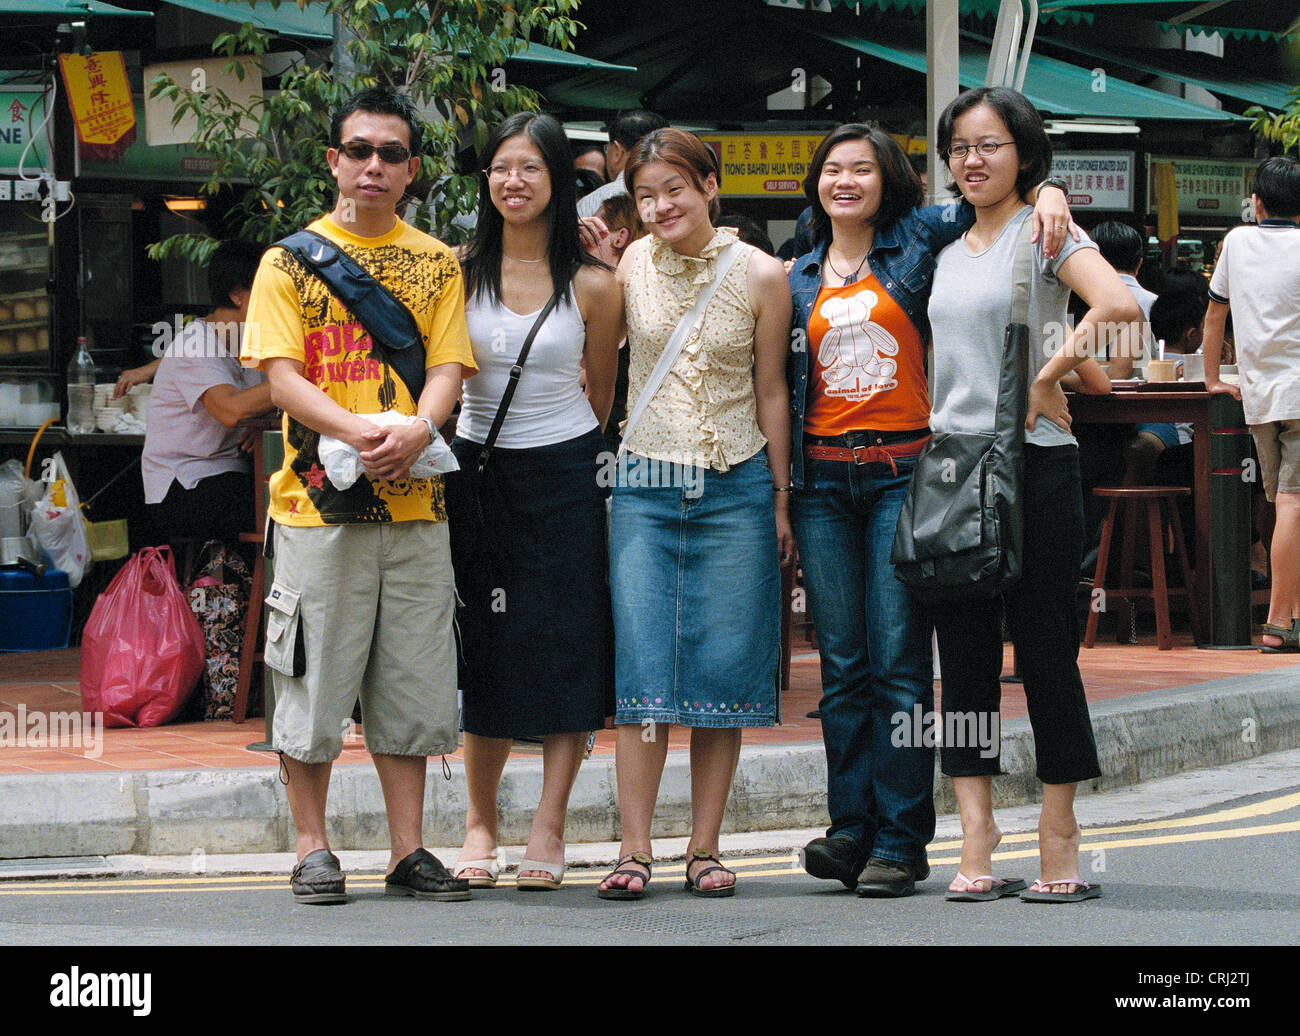 A group photo on a street in Singapore's Chinatown - Stock Image